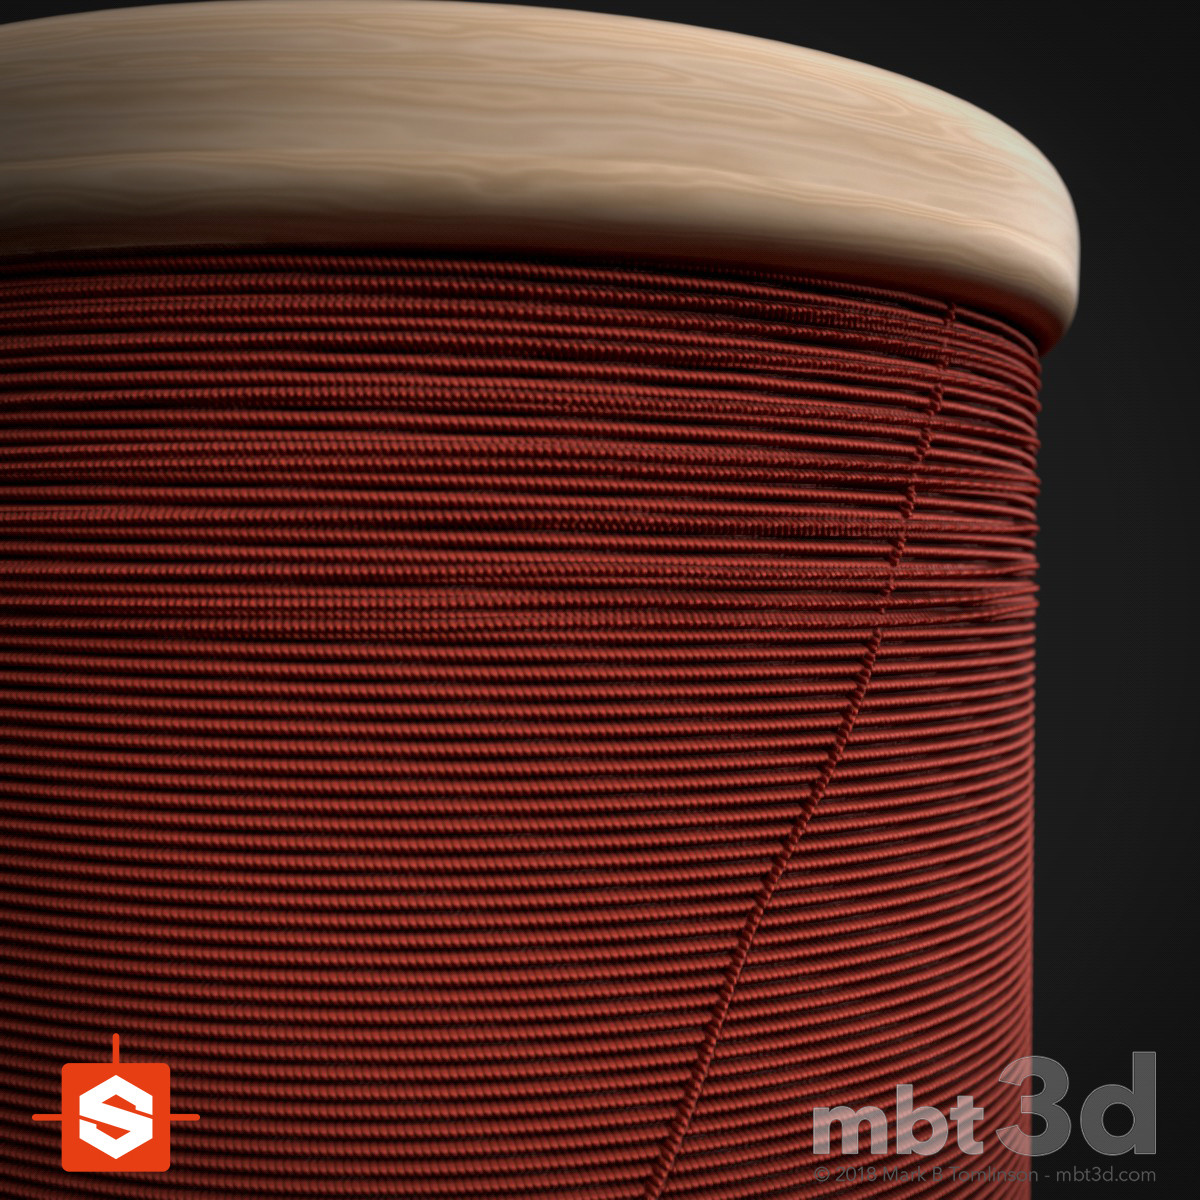 Cotton Reel: Substance Designer